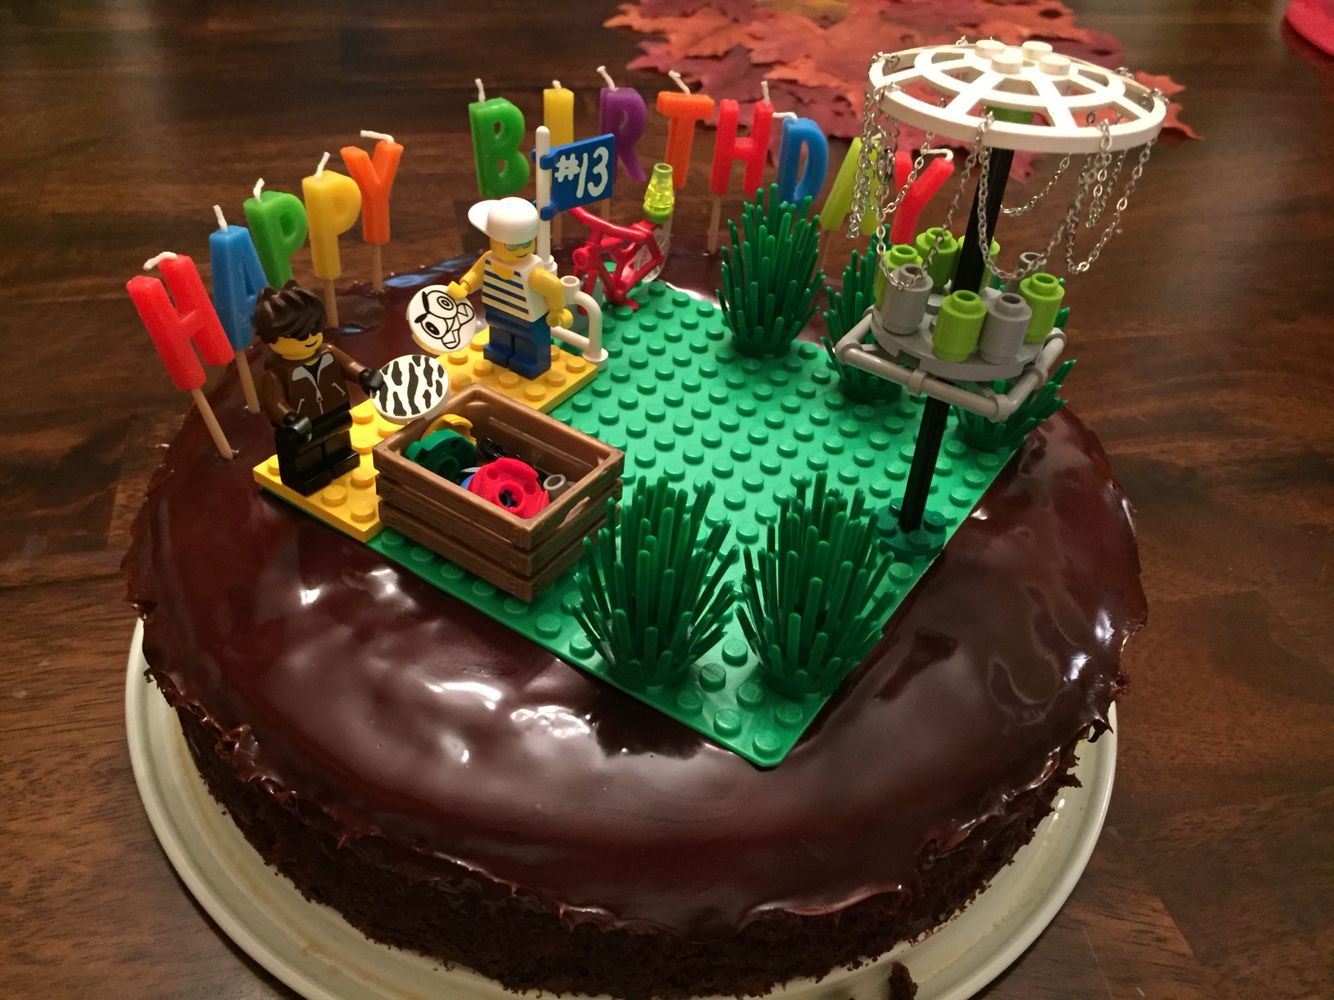 Create A Unique Look With Your Own DIY Golf Cake Topper